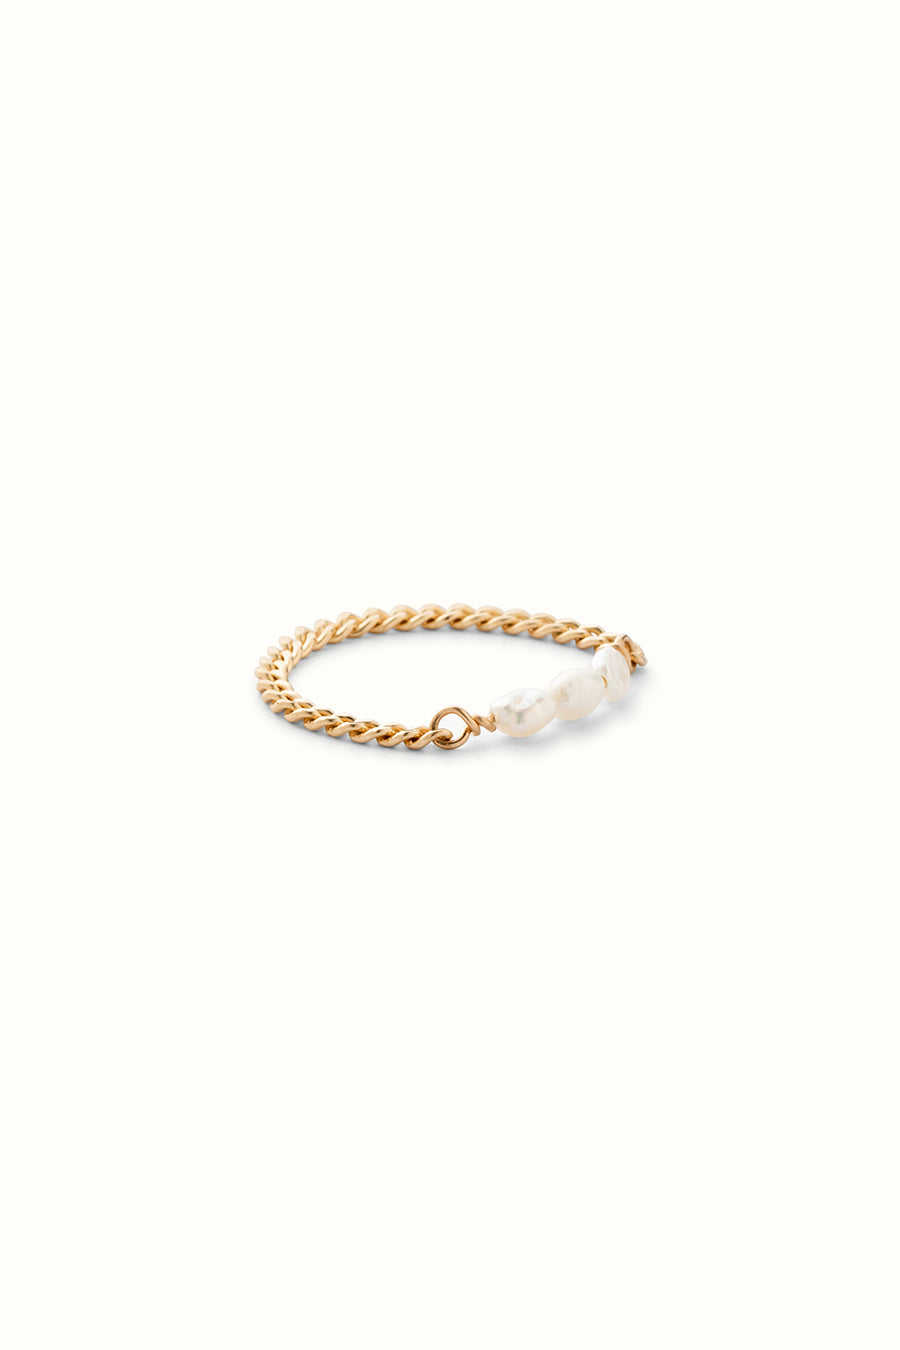 a fine curb chain ring with pearls on a white background